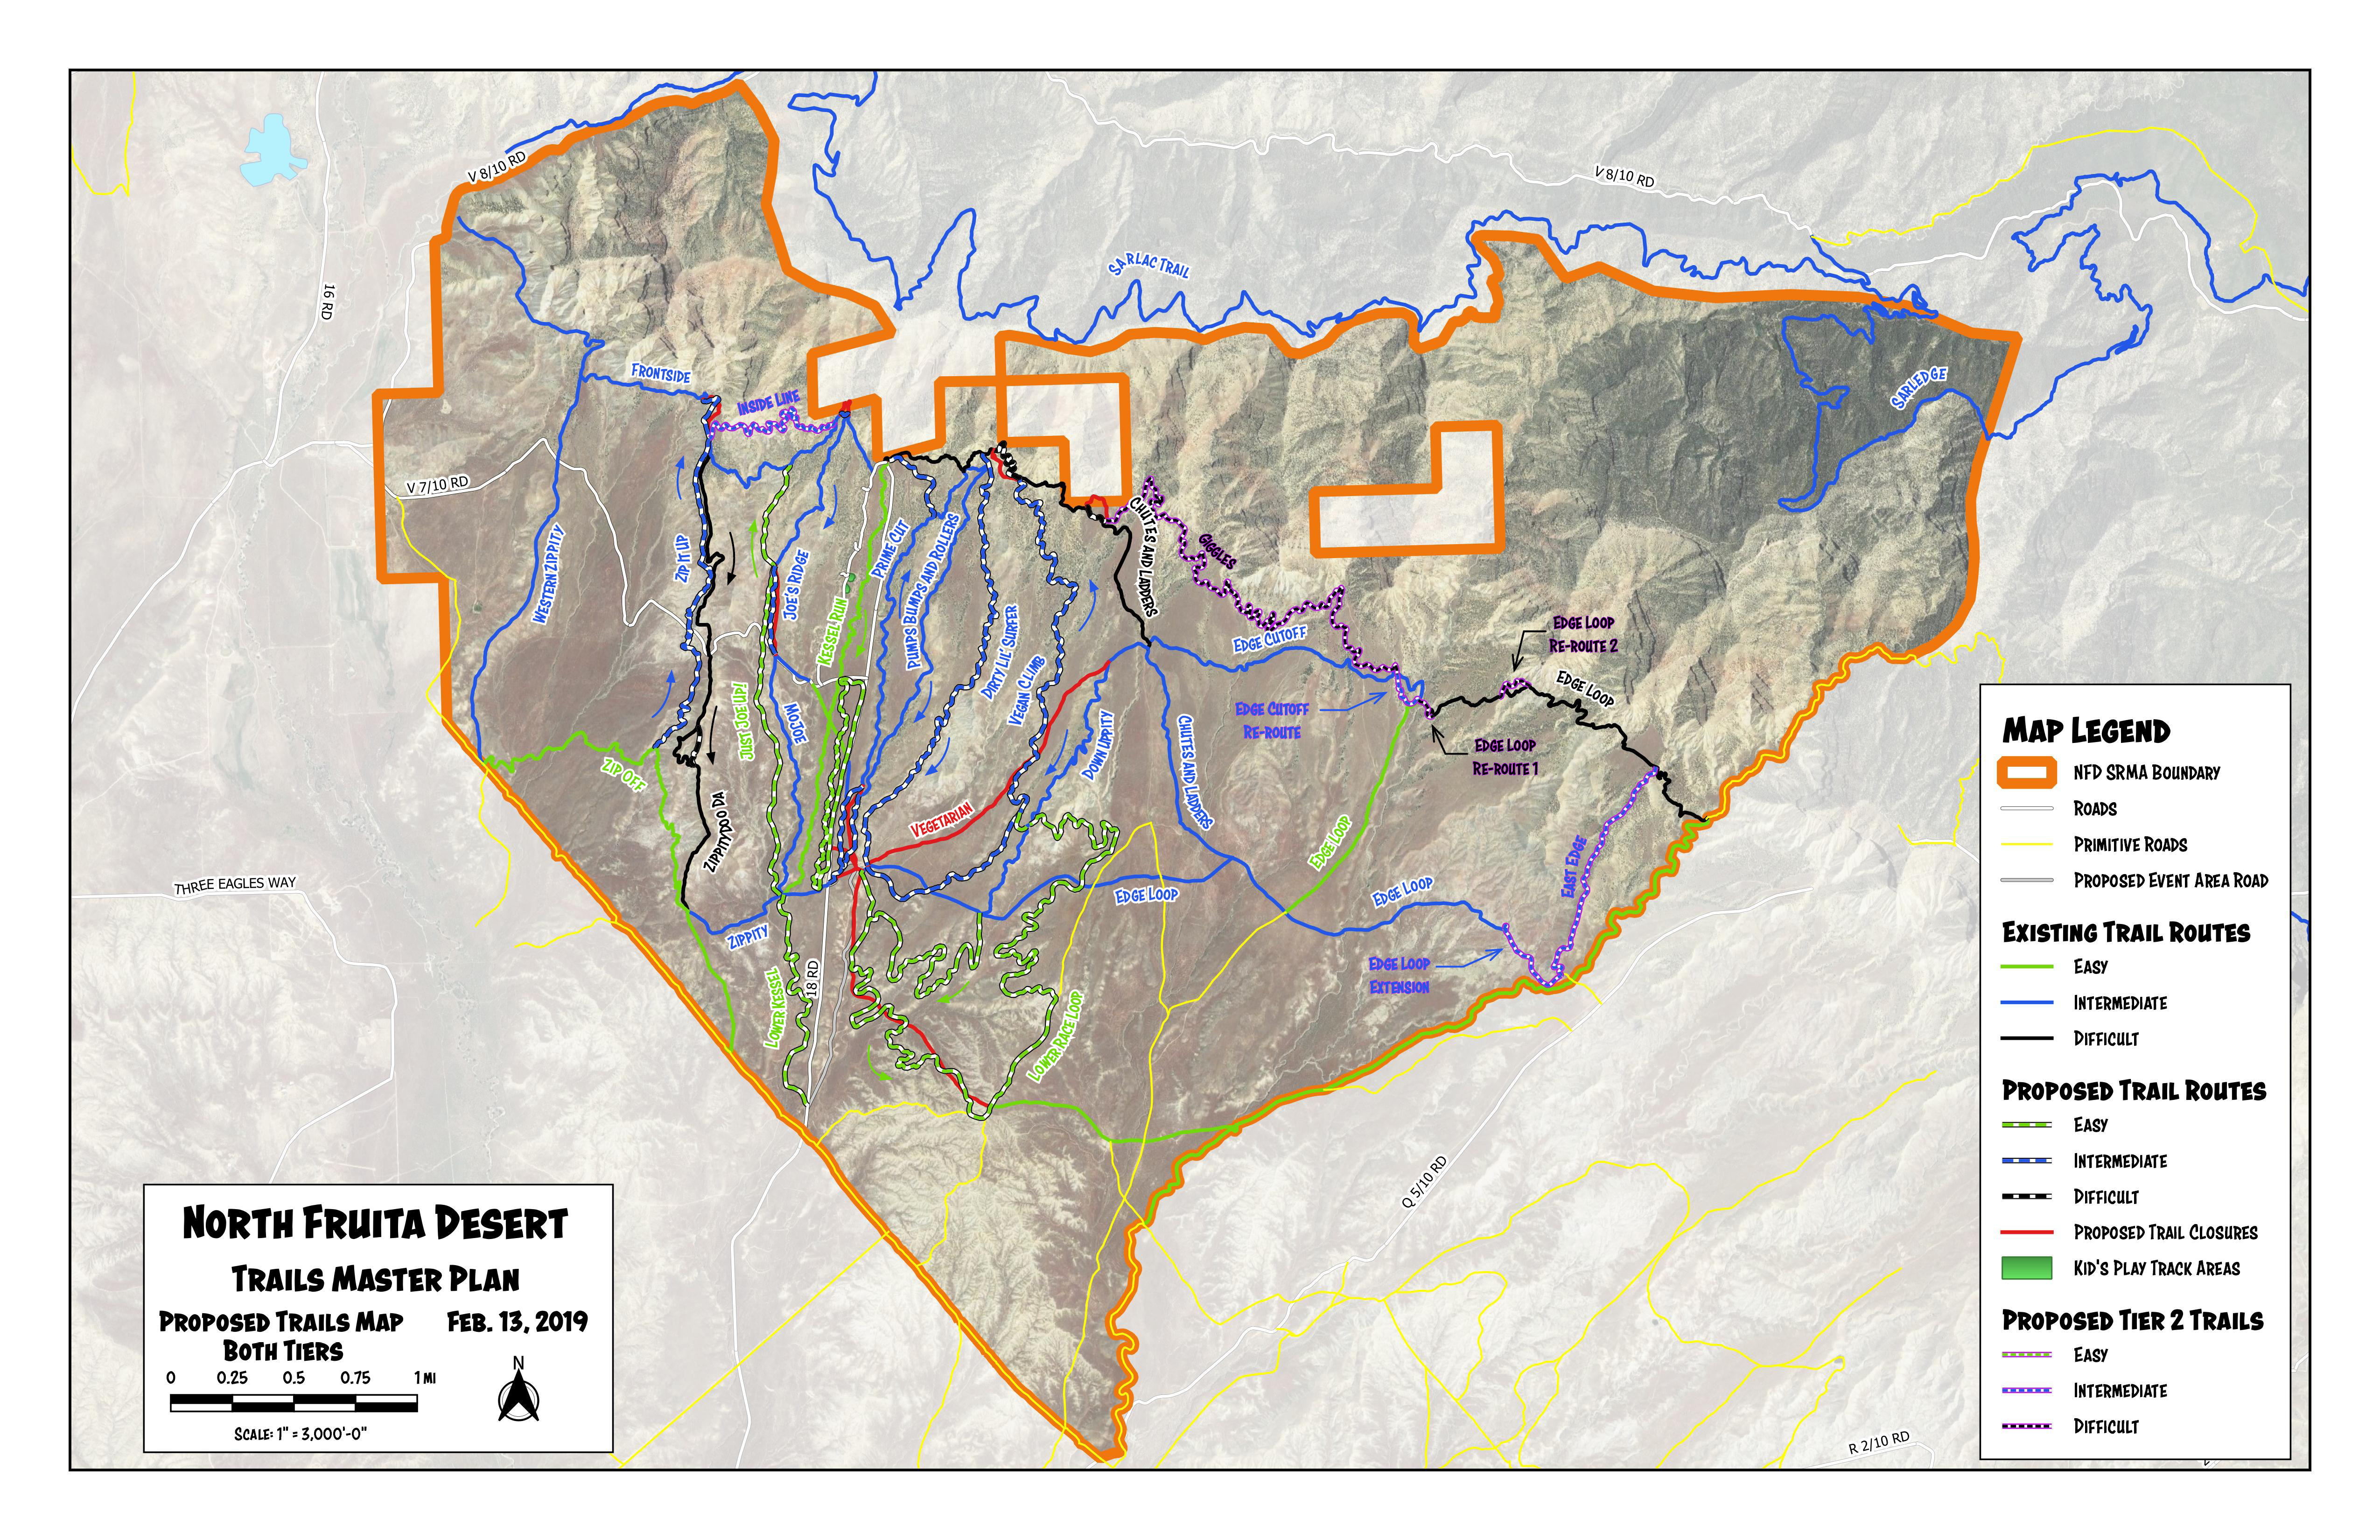 North Fruita Desert All Routes Map